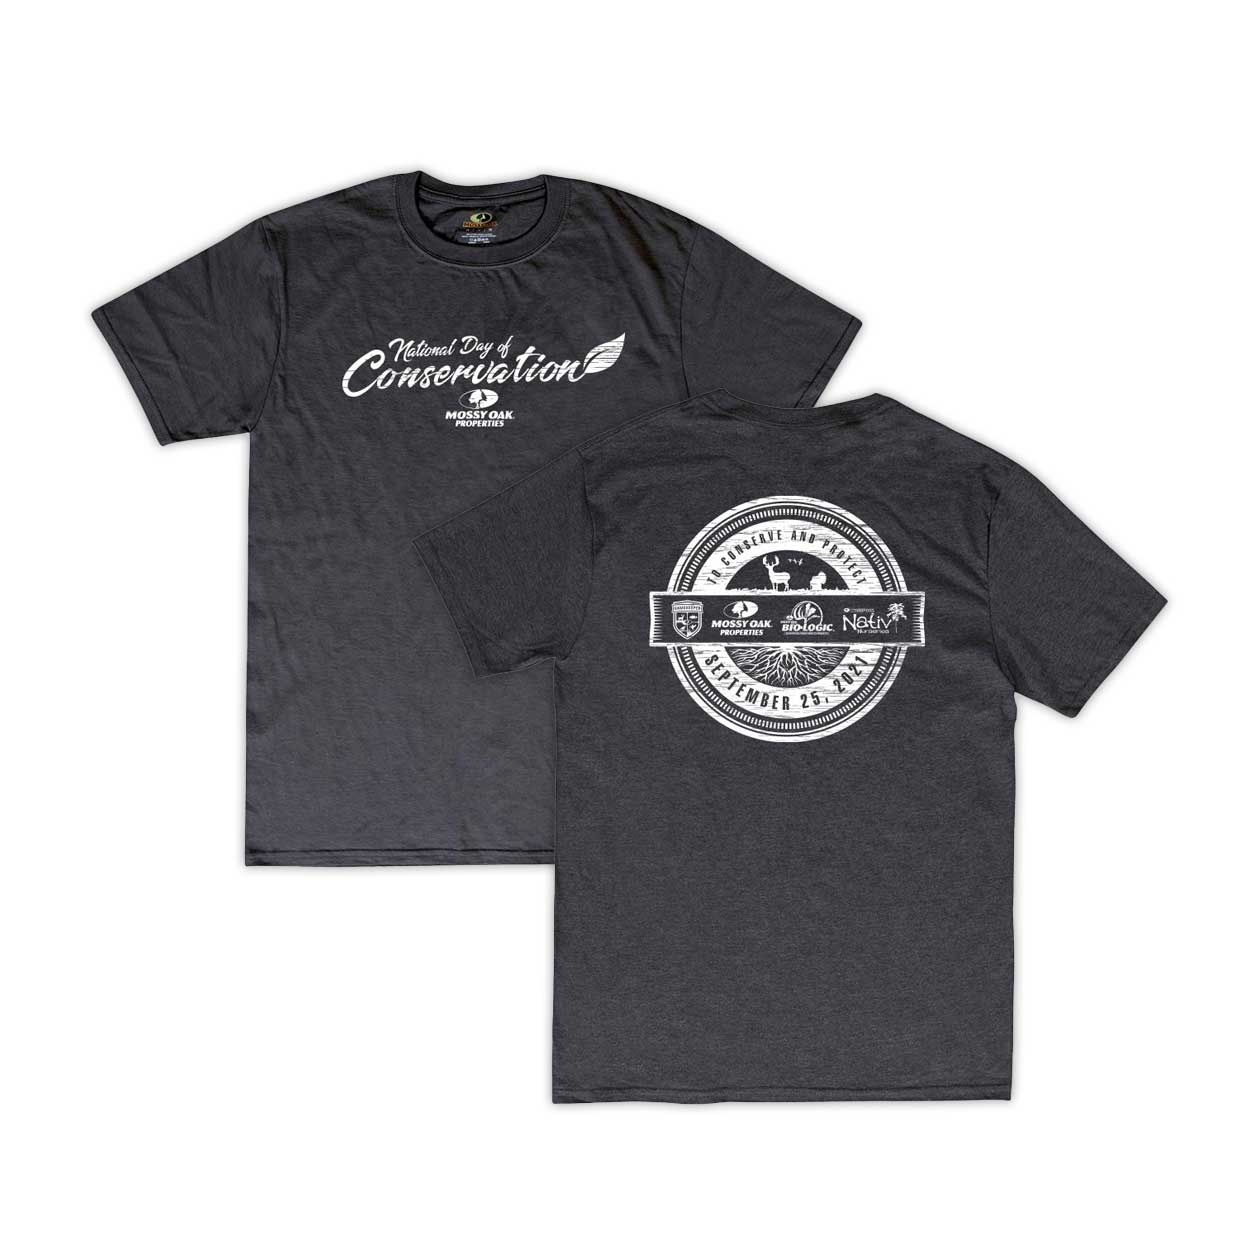 National Day of Conservation T-Shirt